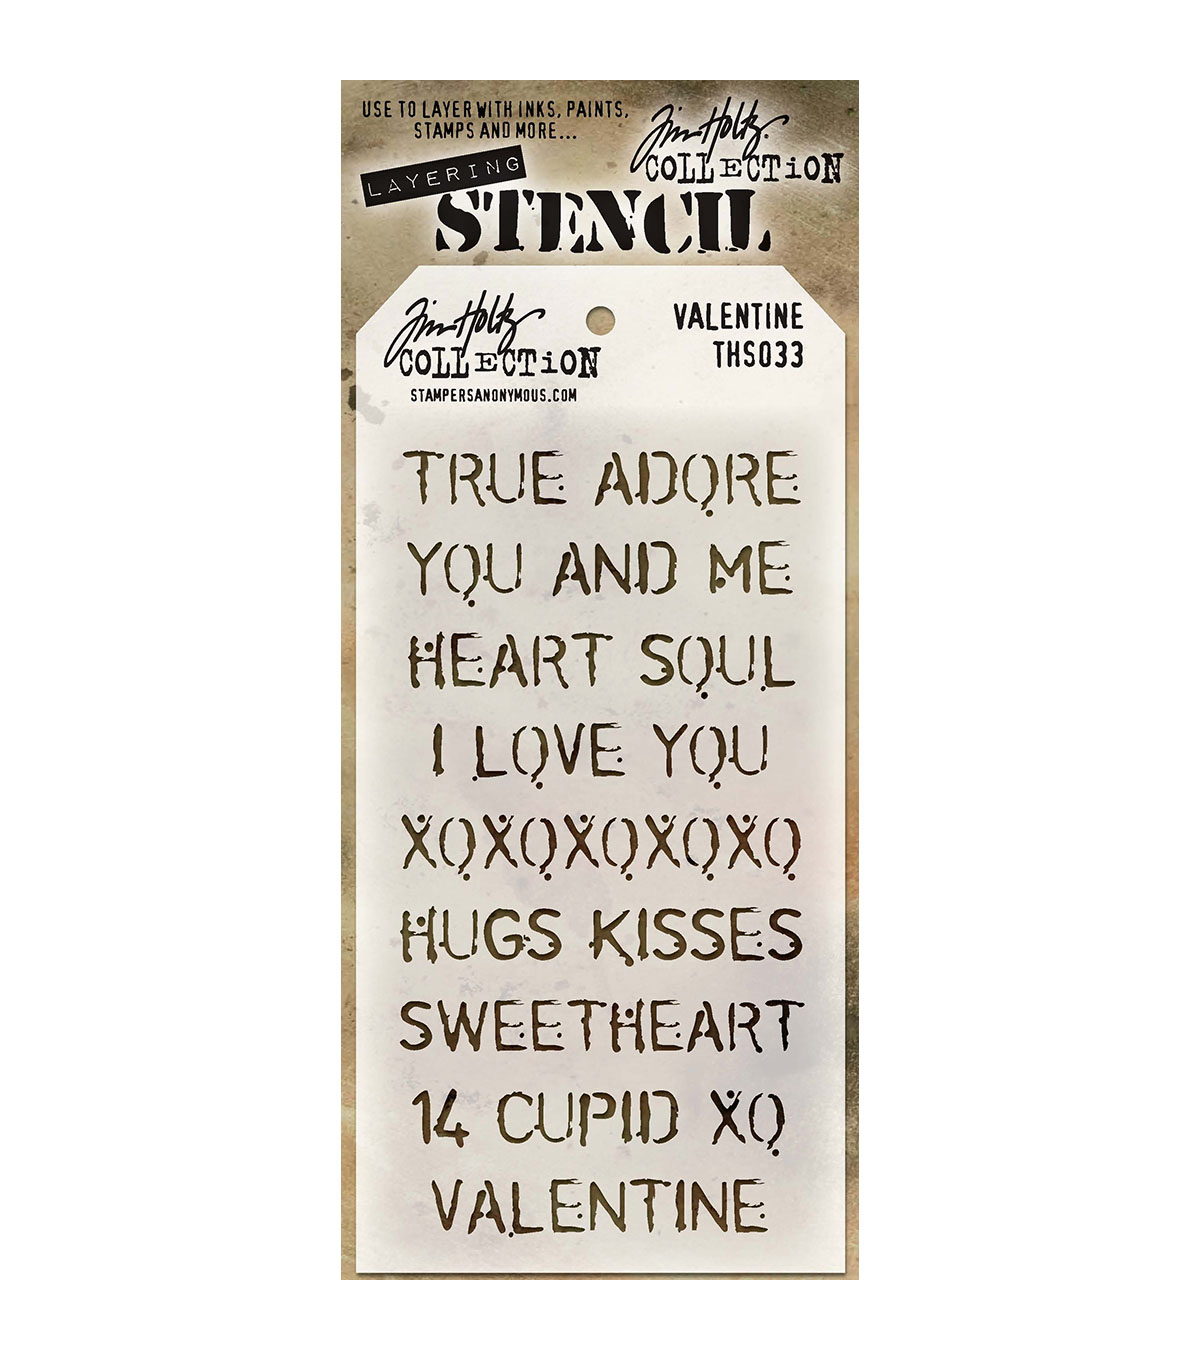 Stampers Anonymous Tim Holtz 8.5\u0027\u0027x4.12\u0027\u0027 Layered Stencil-Valentine